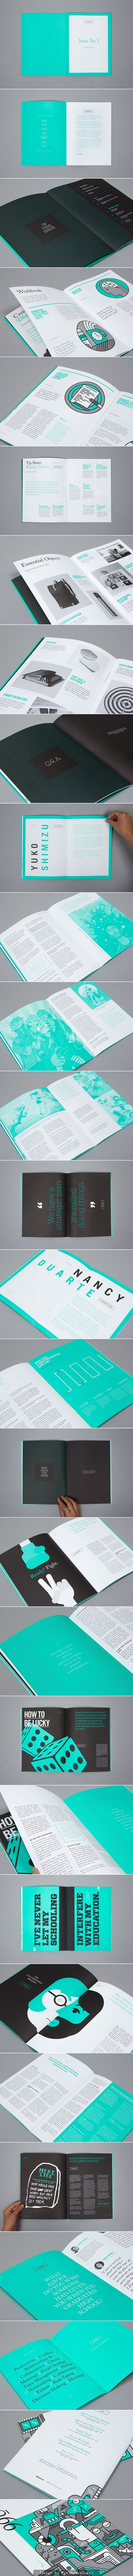 99U Quarterly Magazine Issue No3